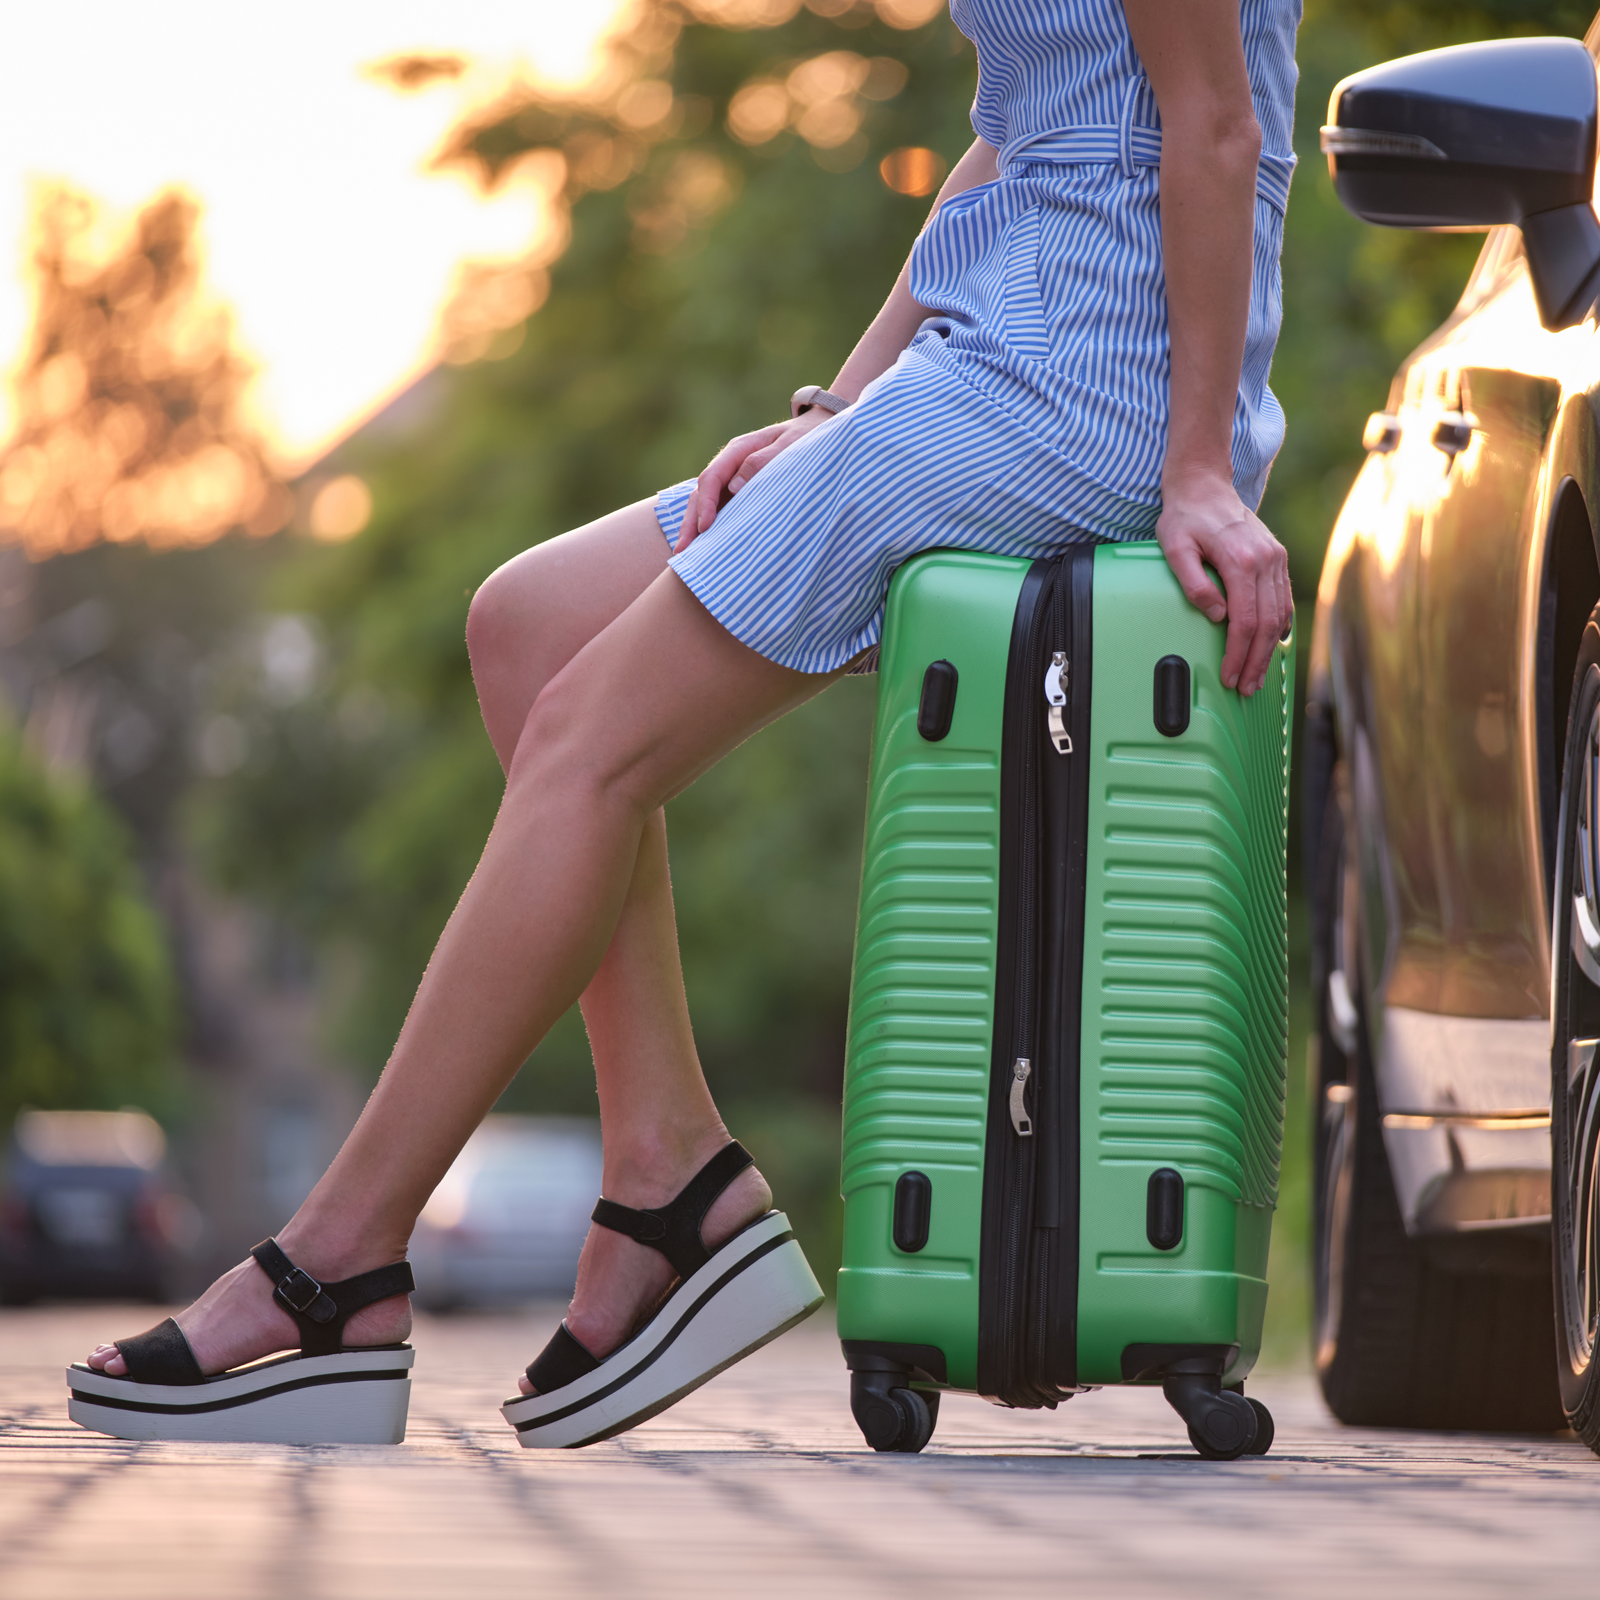 A wman sits on a suitcase stuffed with the contents of a packing list.